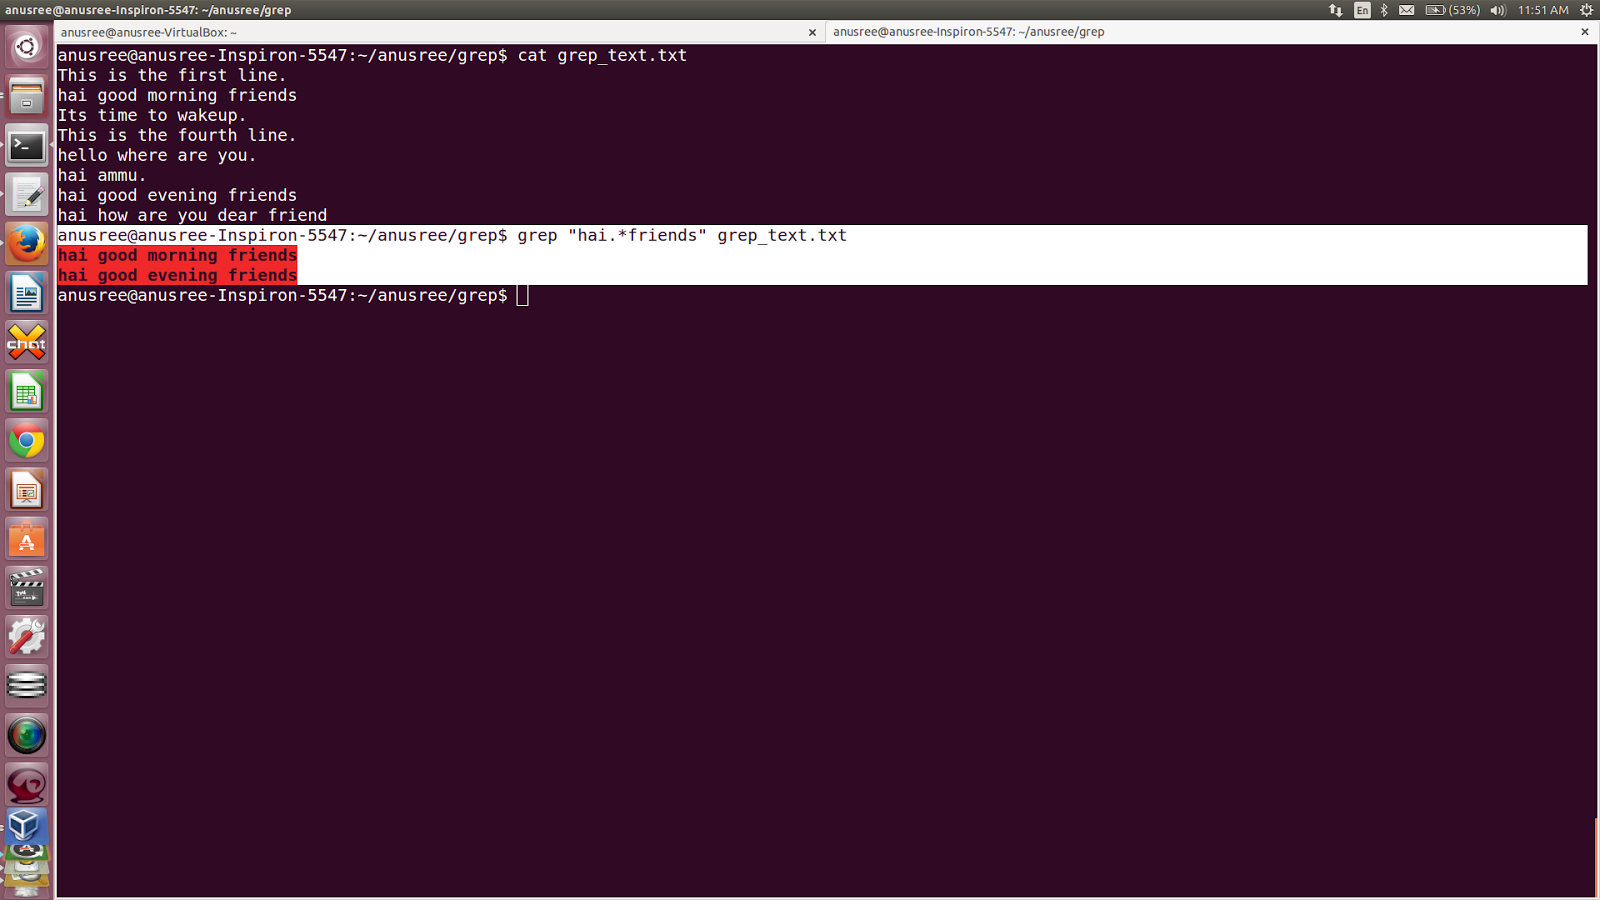 How to create html file in unix command